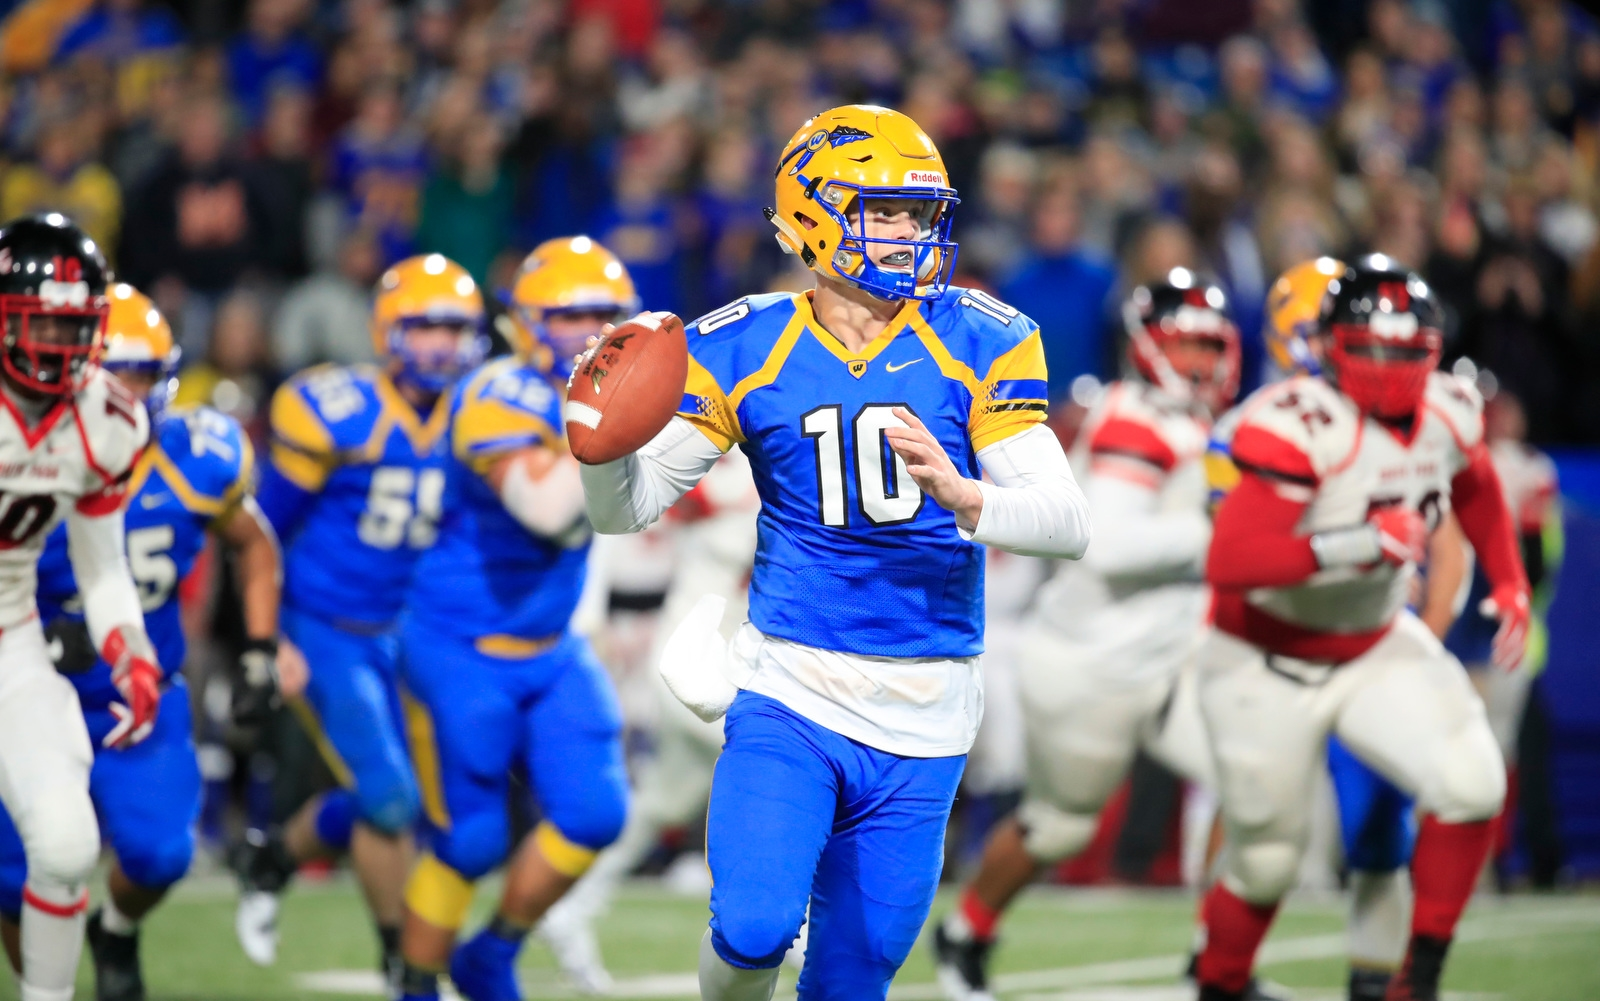 West Seneca West Matt Myers throws against South Park during the first half of the Section VI Class A Championships at New Era Field on Saturday, Nov. 4, 2017.